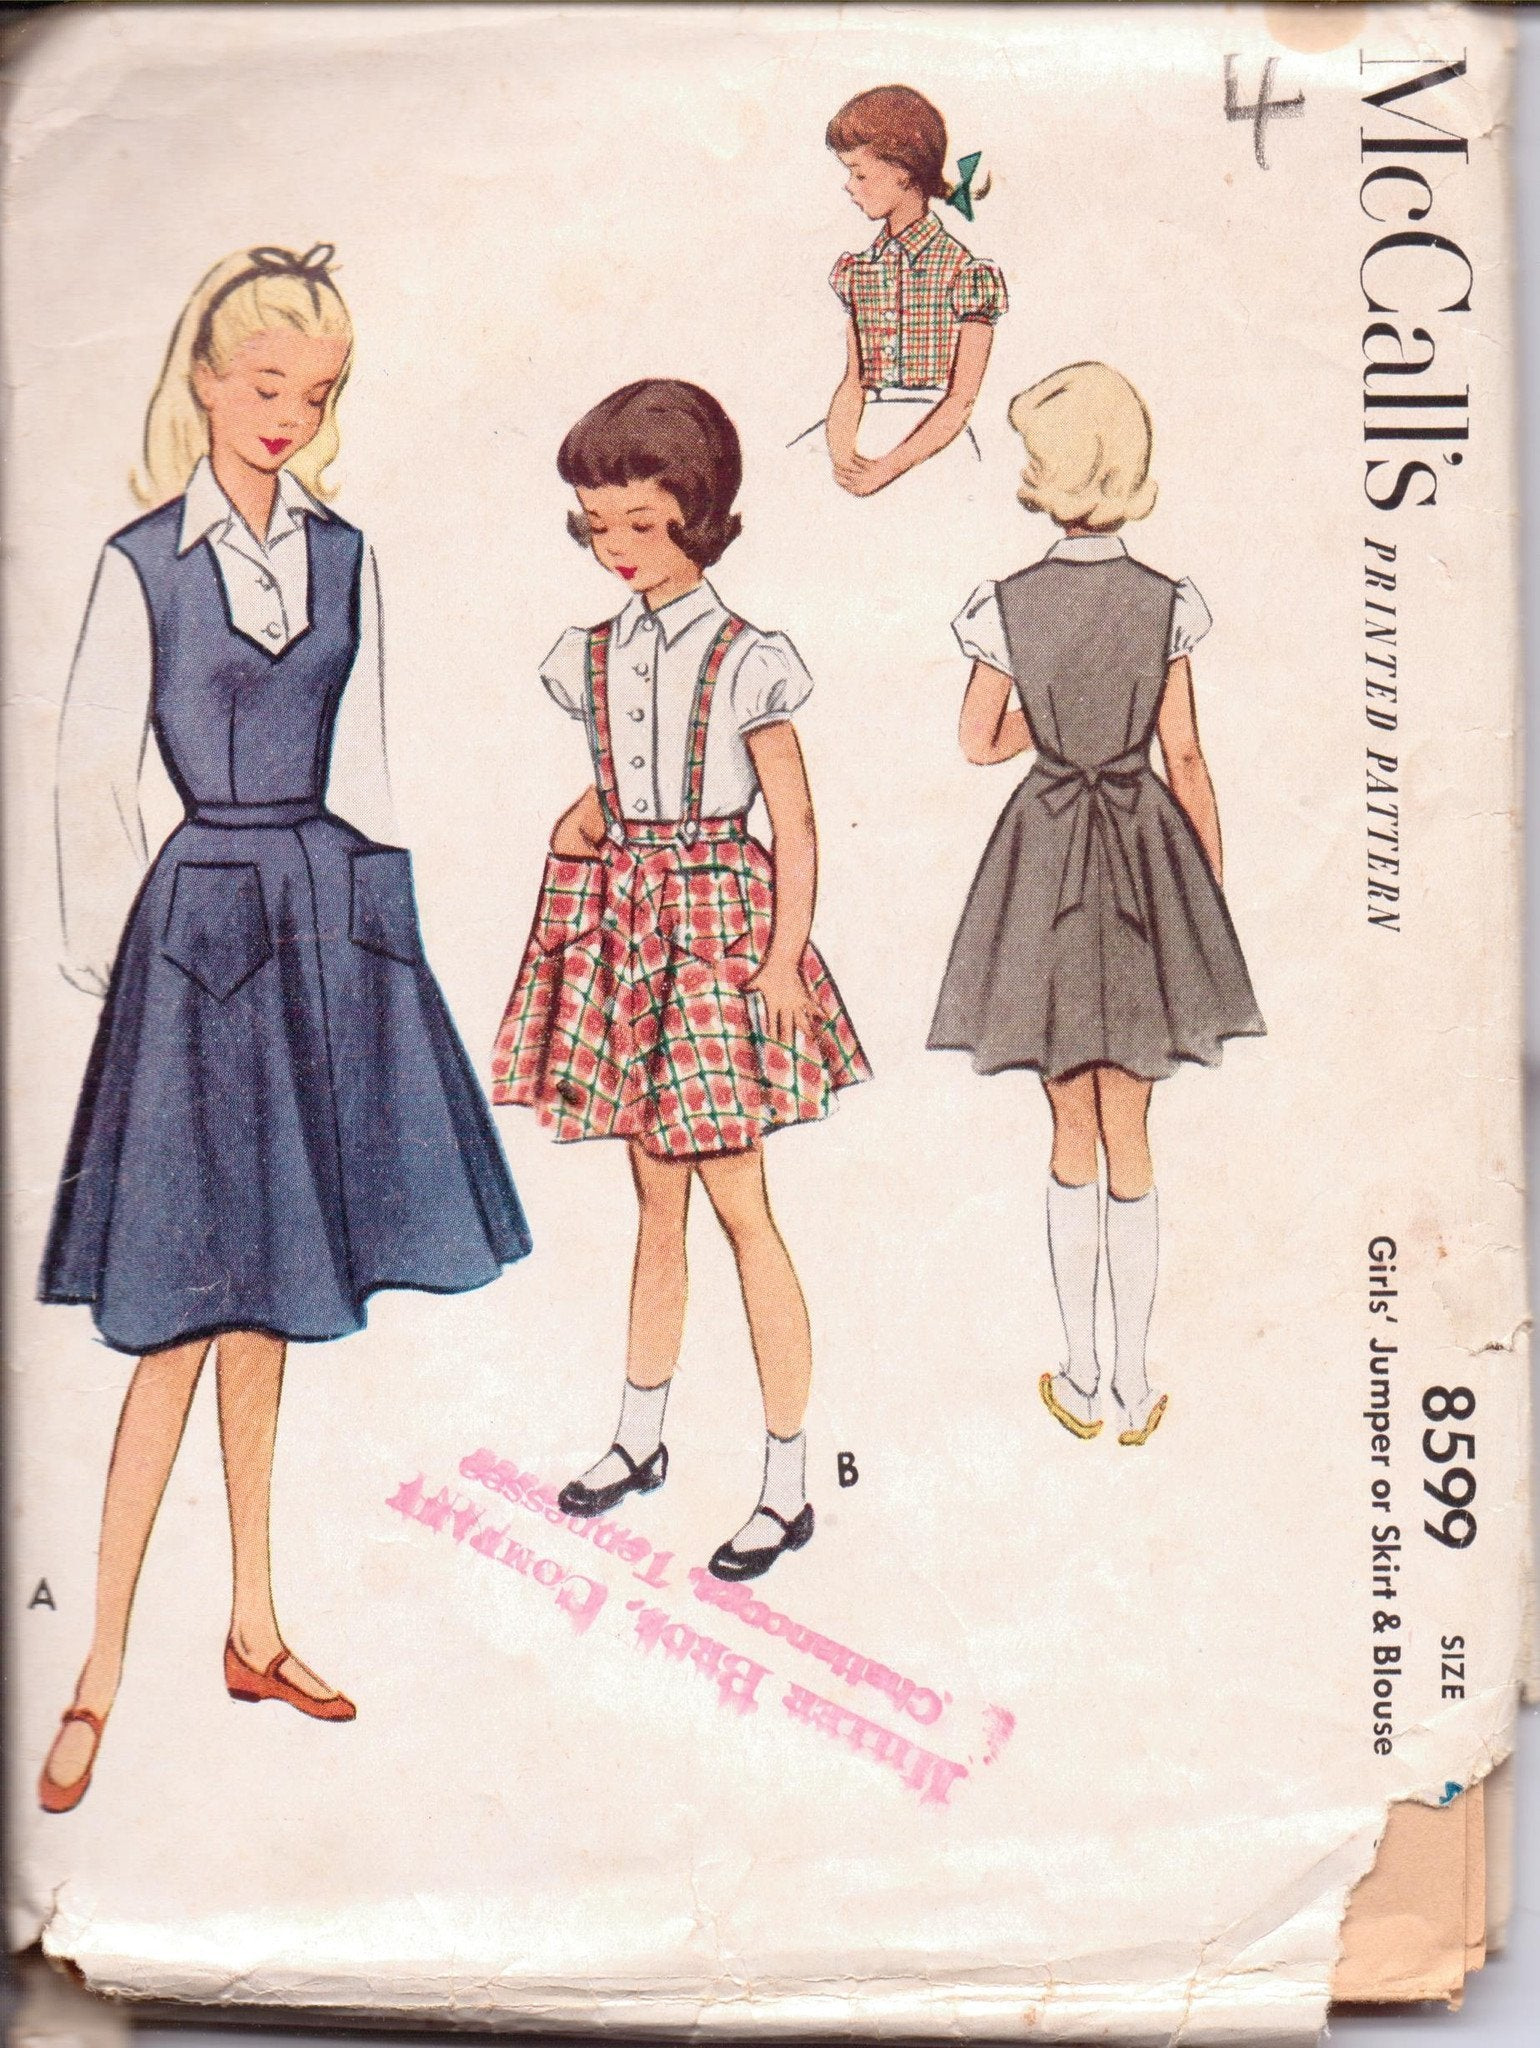 McCall's 8599 Little Girls Jumper Dress Blouse Suspender Skirt Vintage 1950's Sewing Pattern - VintageStitching - Vintage Sewing Patterns